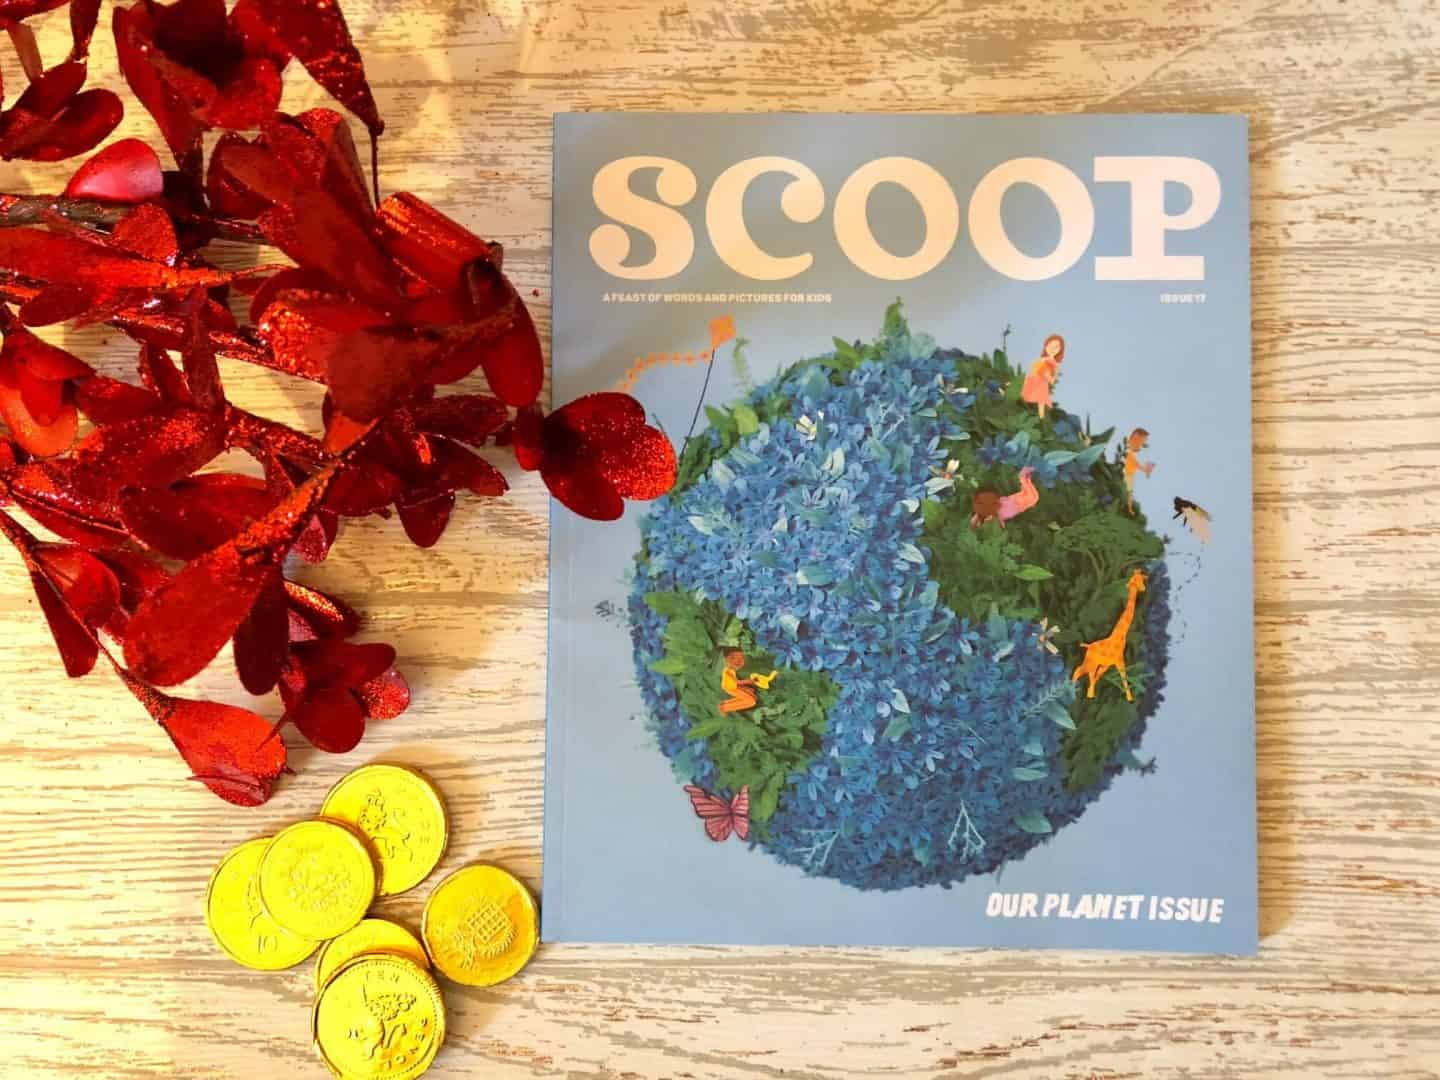 Scoop, the literary magazine for kids: a meaningful present that keeps giving all year.